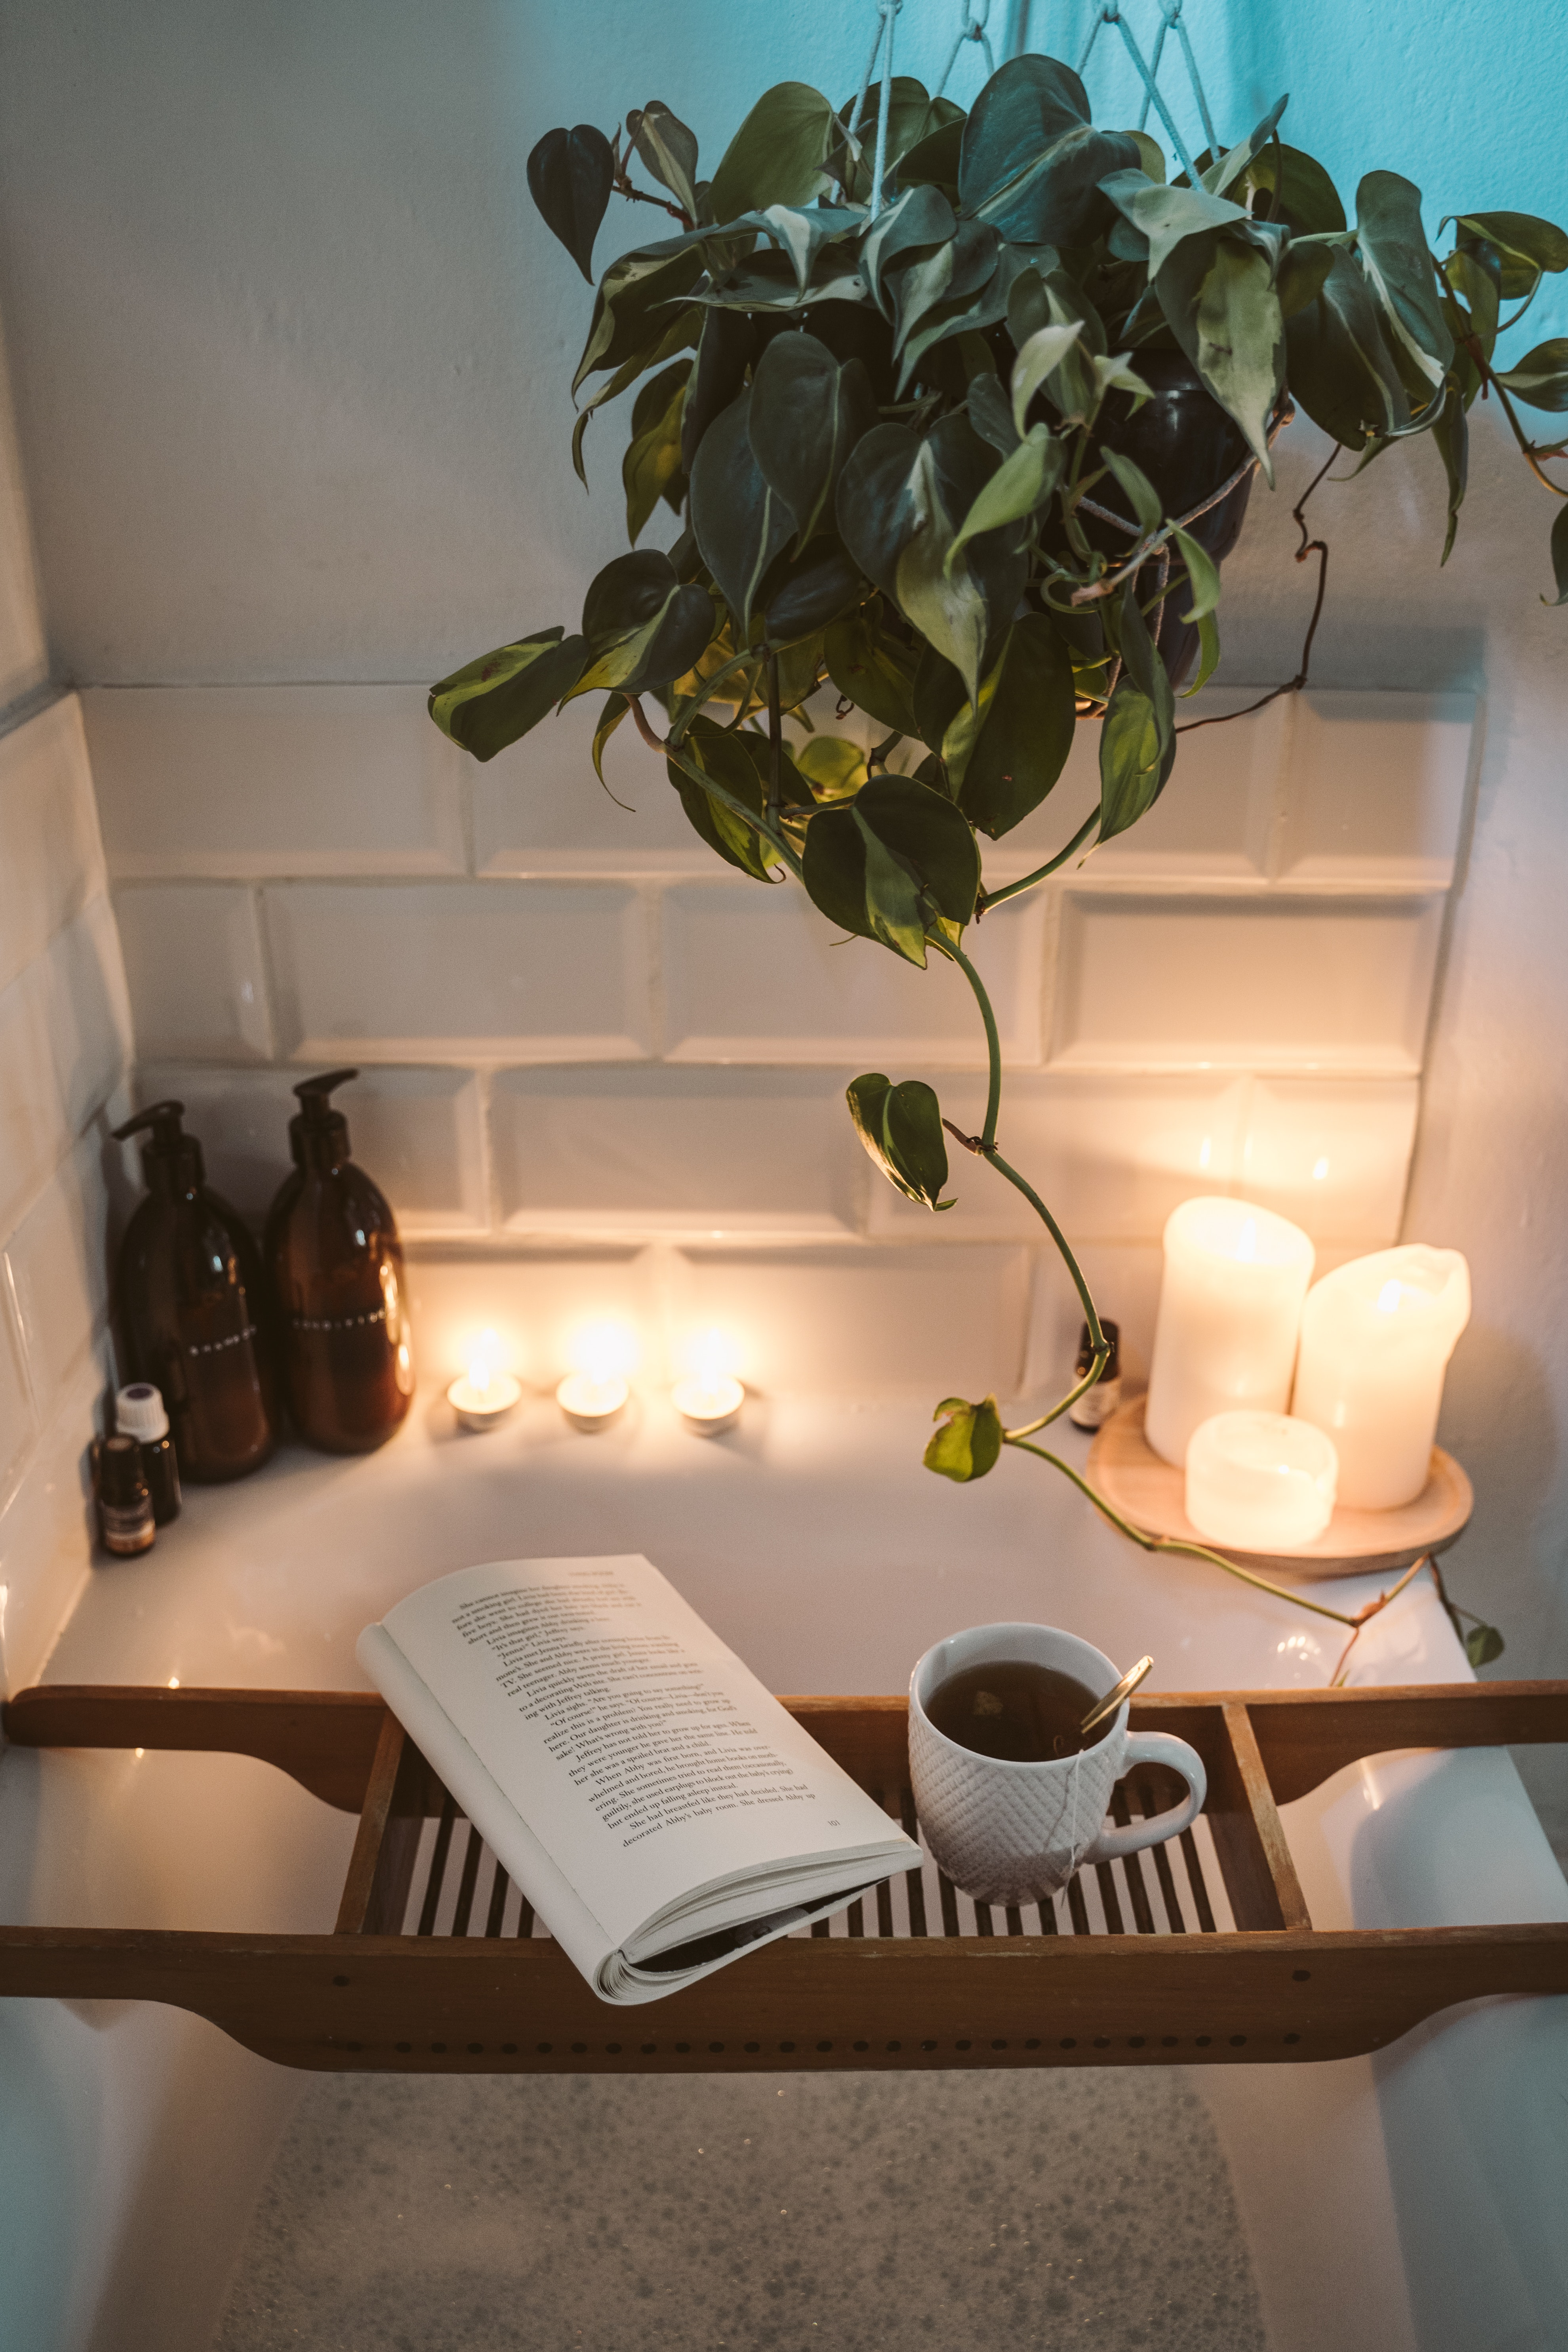 Candlelit bathtub with plant and coffee cup